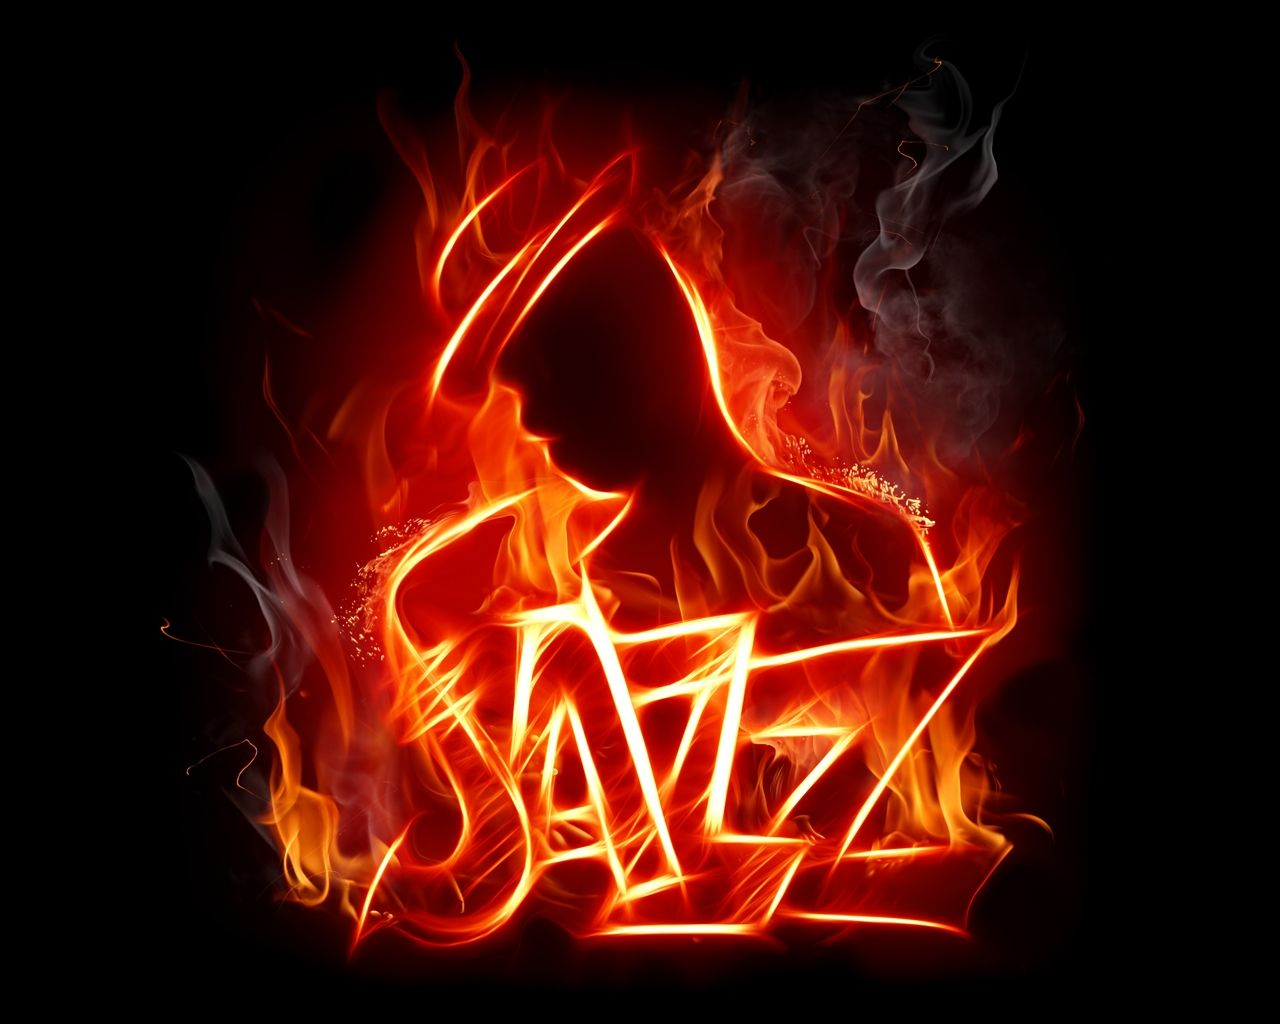 Cool Wallpaper For Facebook Profile Pic Hd Download Free Cool Wallpaper For Facebook Profile Pic Download Download Cool Wa Fire Art Smooth Jazz Jazz Music